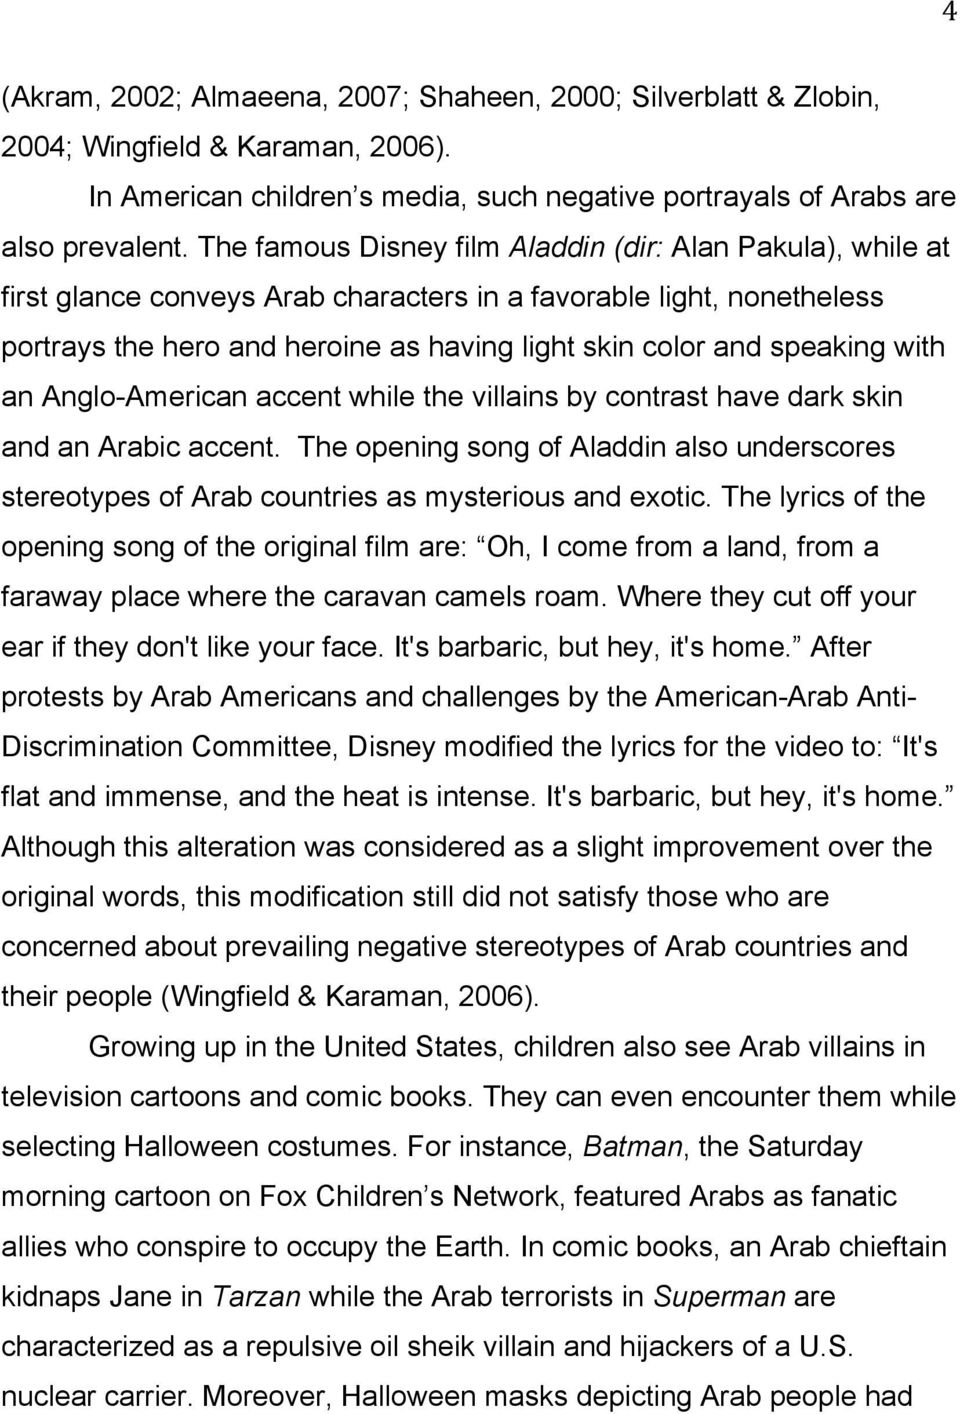 speaking with an Anglo-American accent while the villains by contrast have dark skin and an Arabic accent.